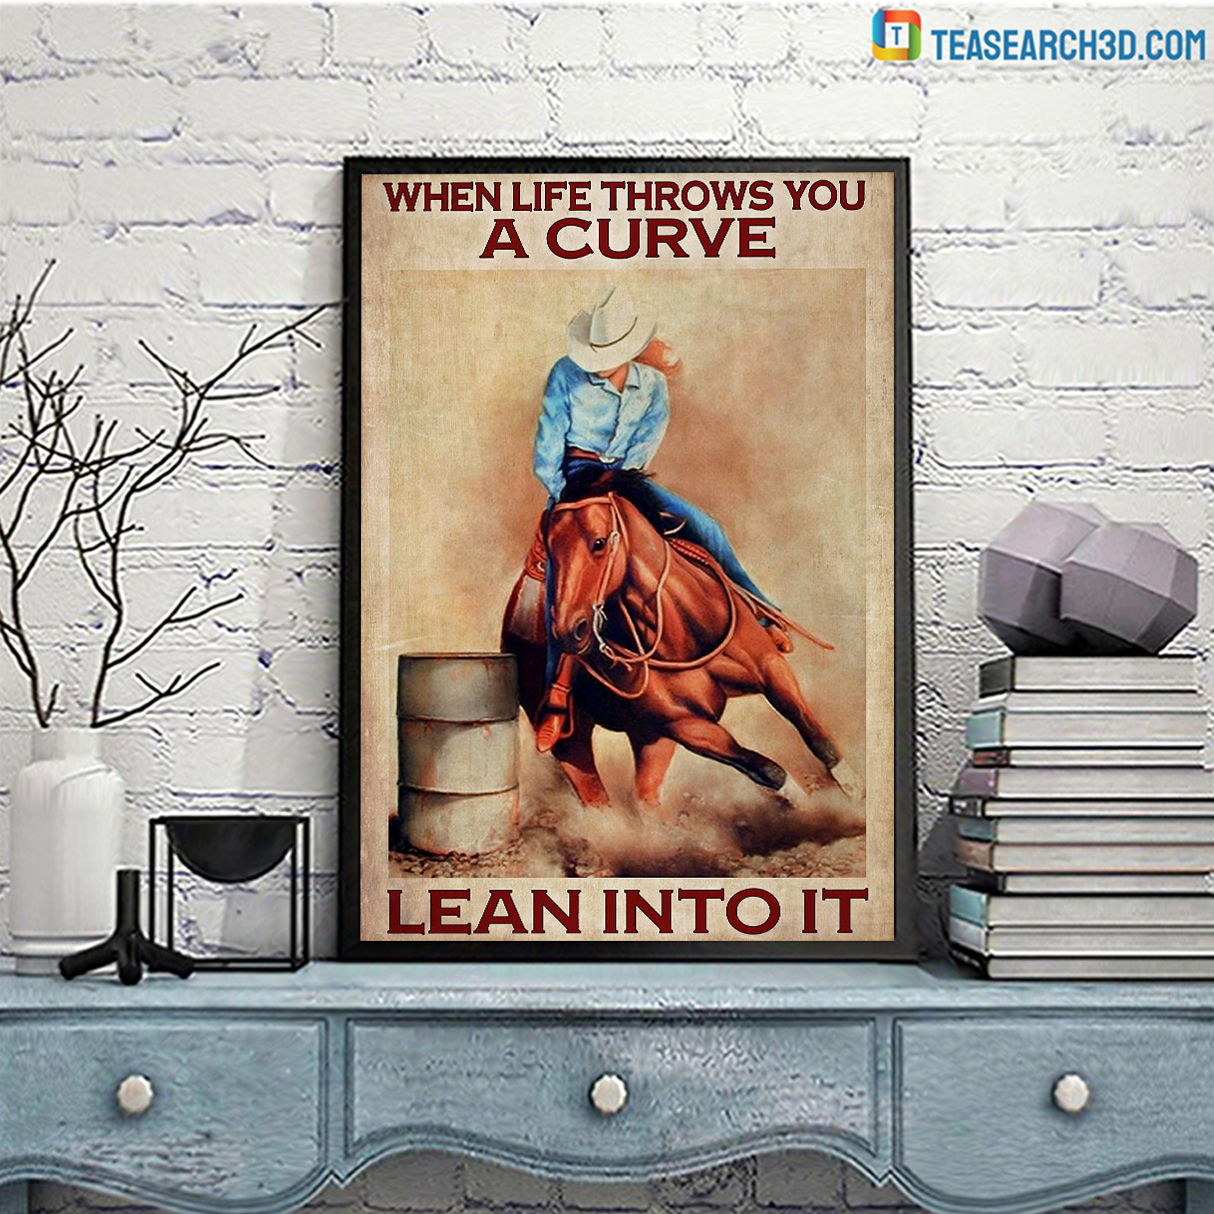 Cowgirl when life throws you a curve lean into it poster